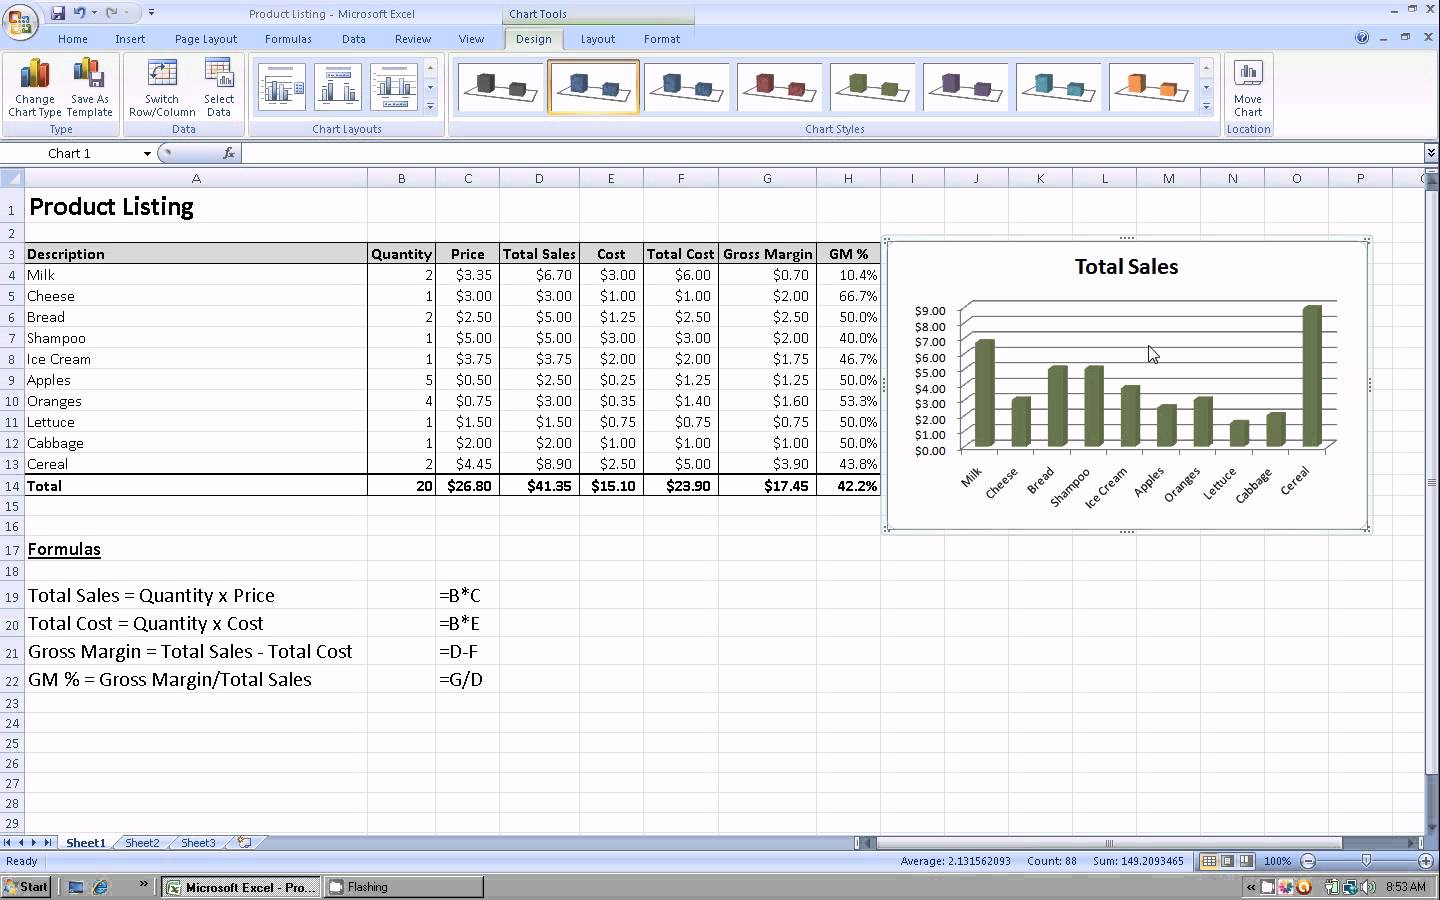 sample excel sheet with sales data